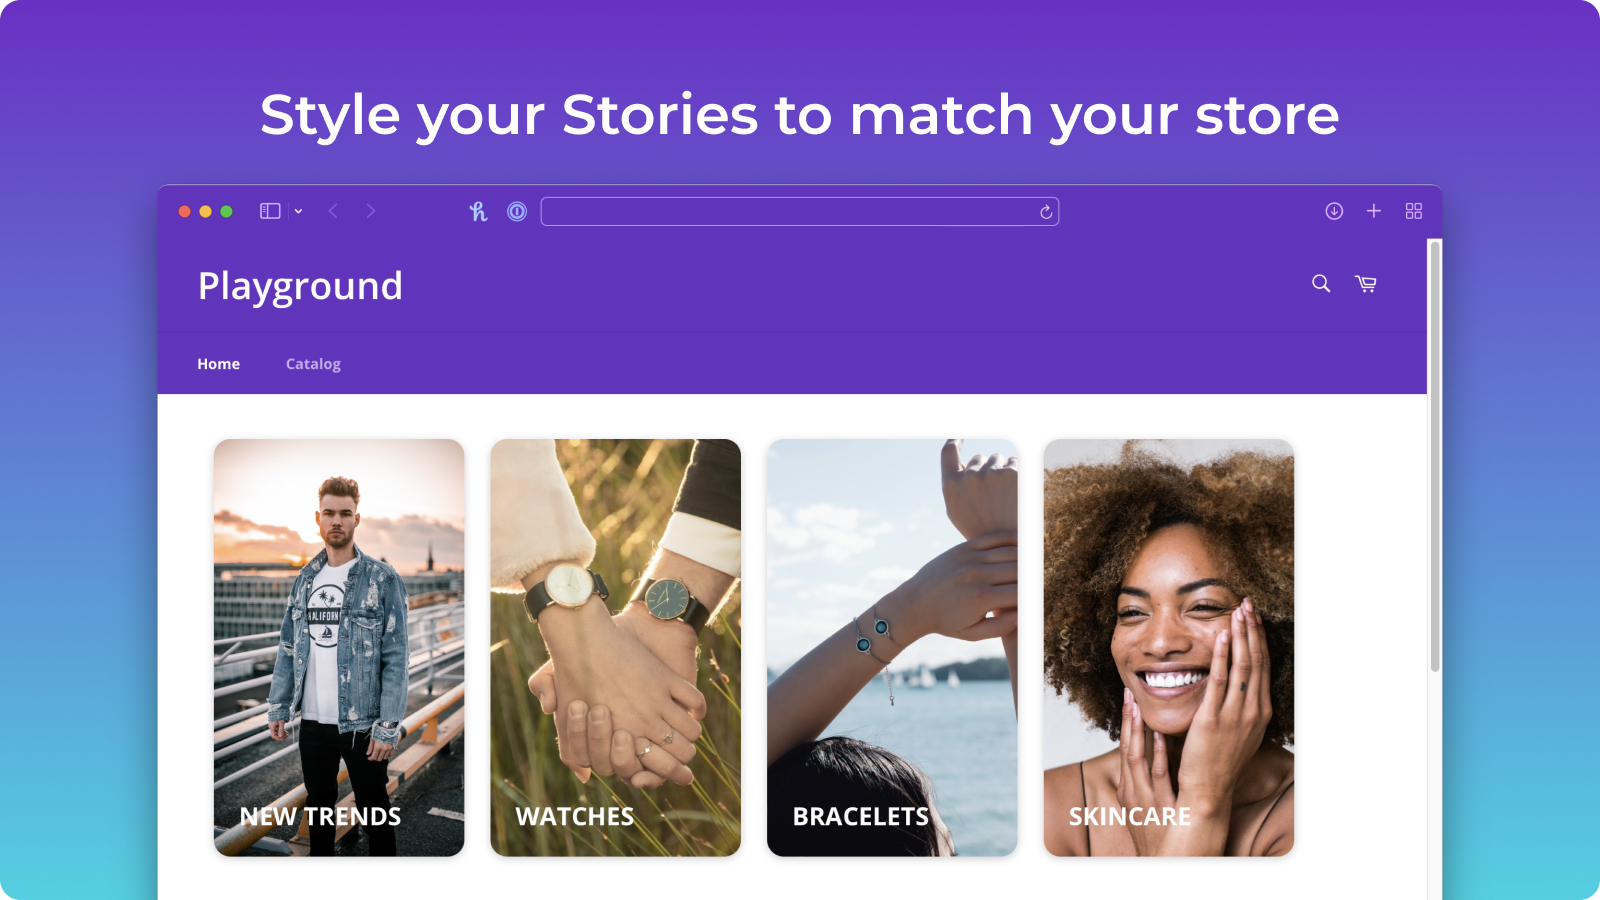 Style your Stories to match your store